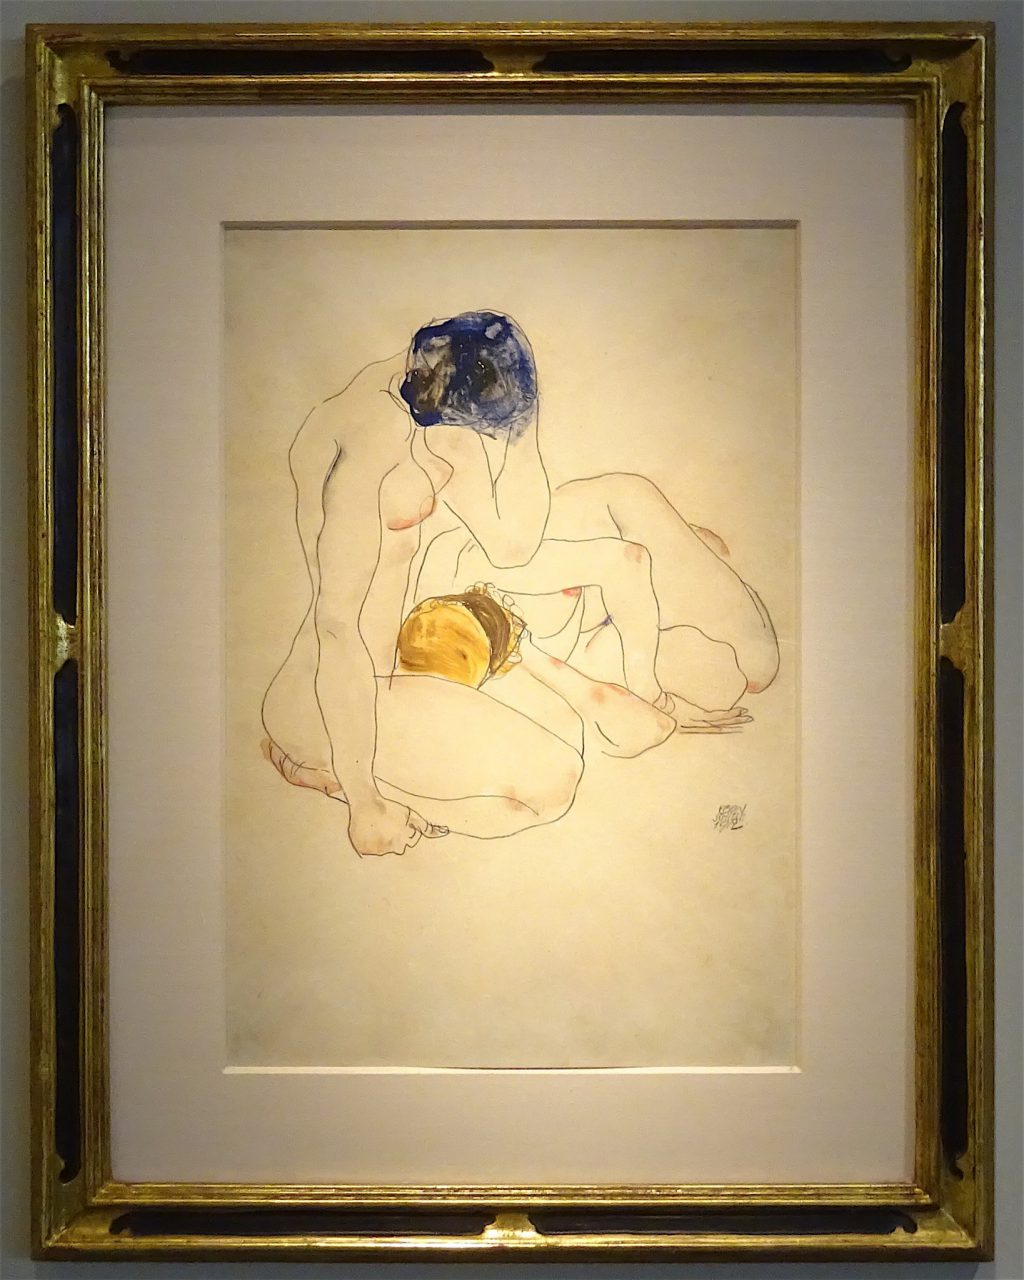 "Egon Schiele ""Two Friends"" 1912, Gouache, watercolour and pencil on paper, 44.4 x 30.2 cm, Signed and dated 'Egon Schiele 1912', lower right @ Richard Nagy"